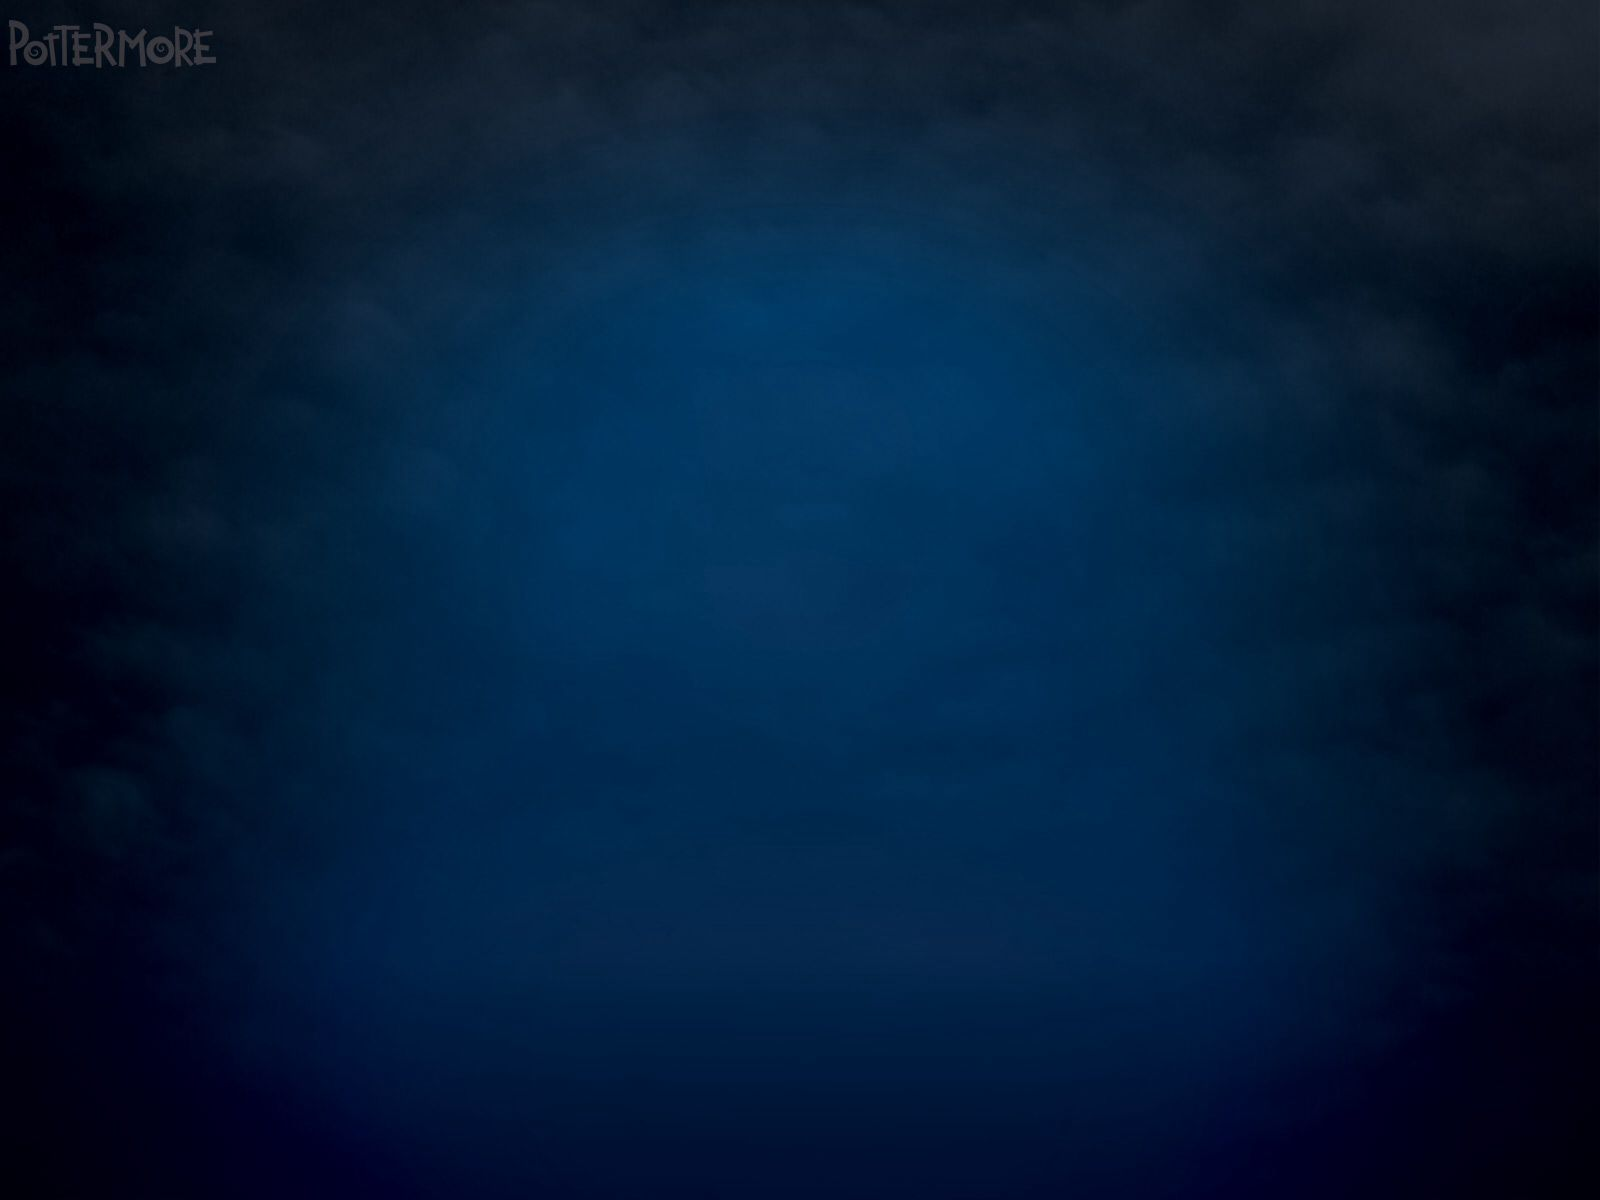 Pottermore Ravenclaw Background Cool Wallpapers And